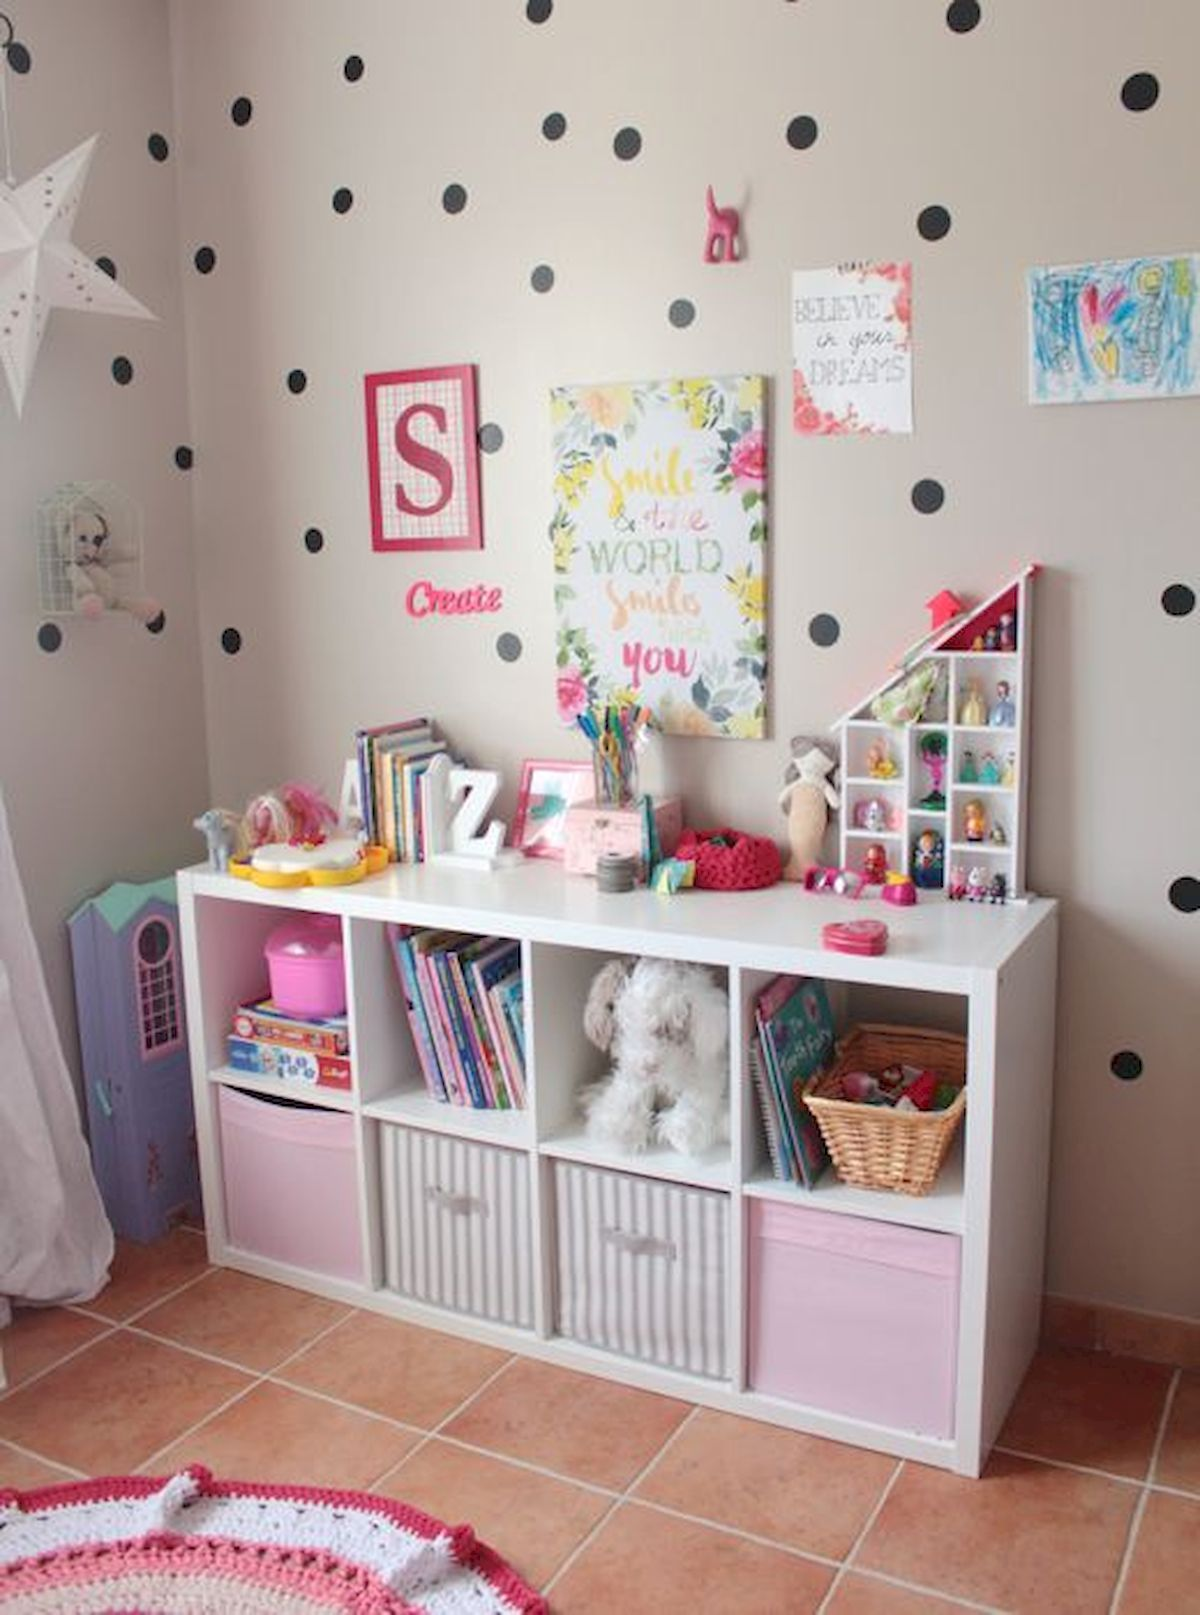 Storage Ideas For Rooms And Childrens Playgrounds